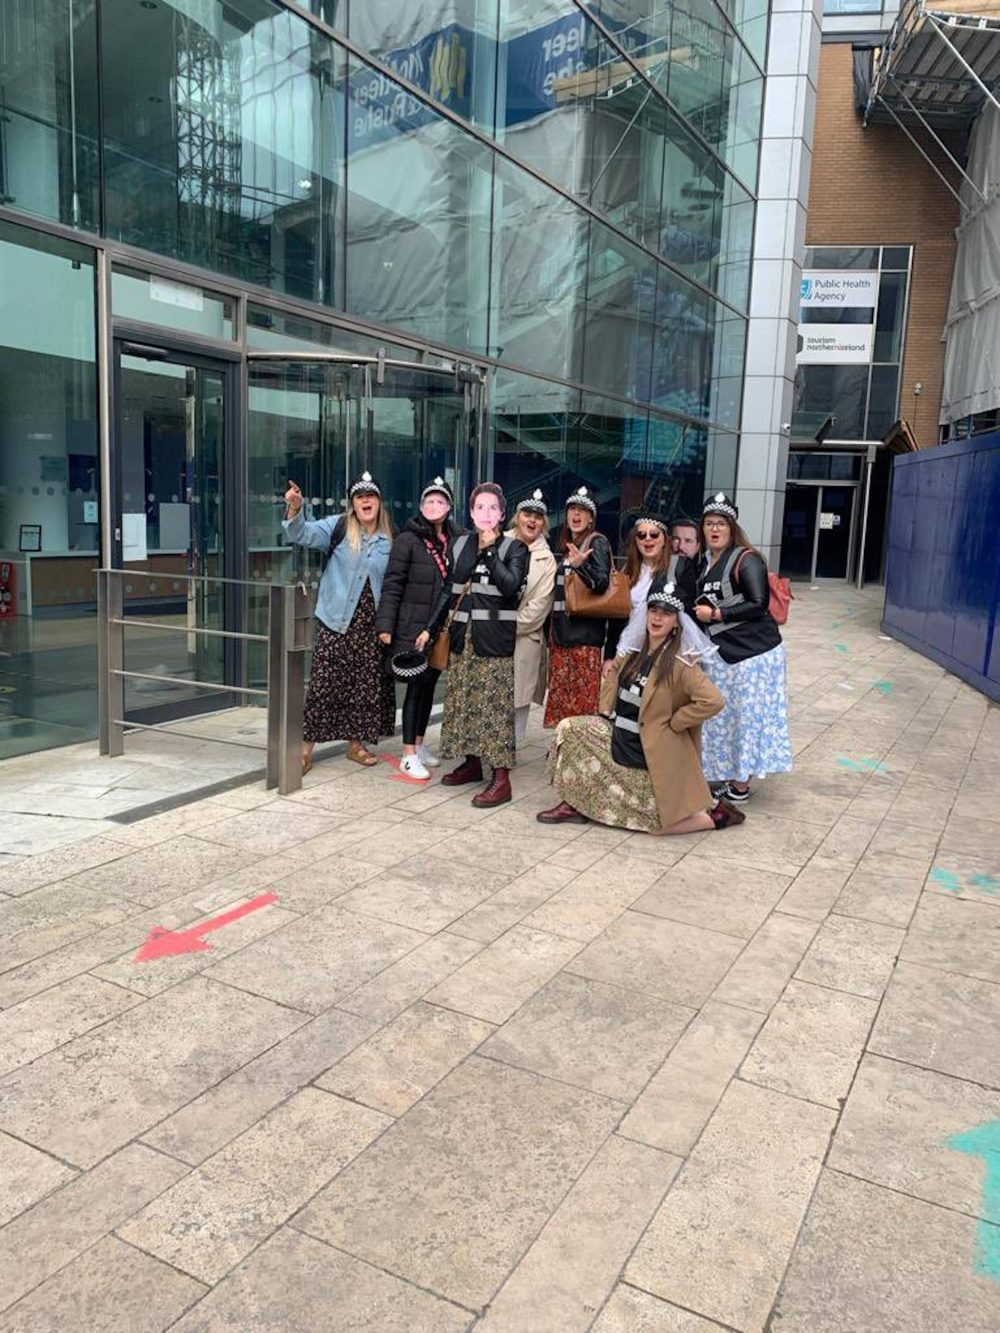 Line of Duty hen party posing | Marriage News UK